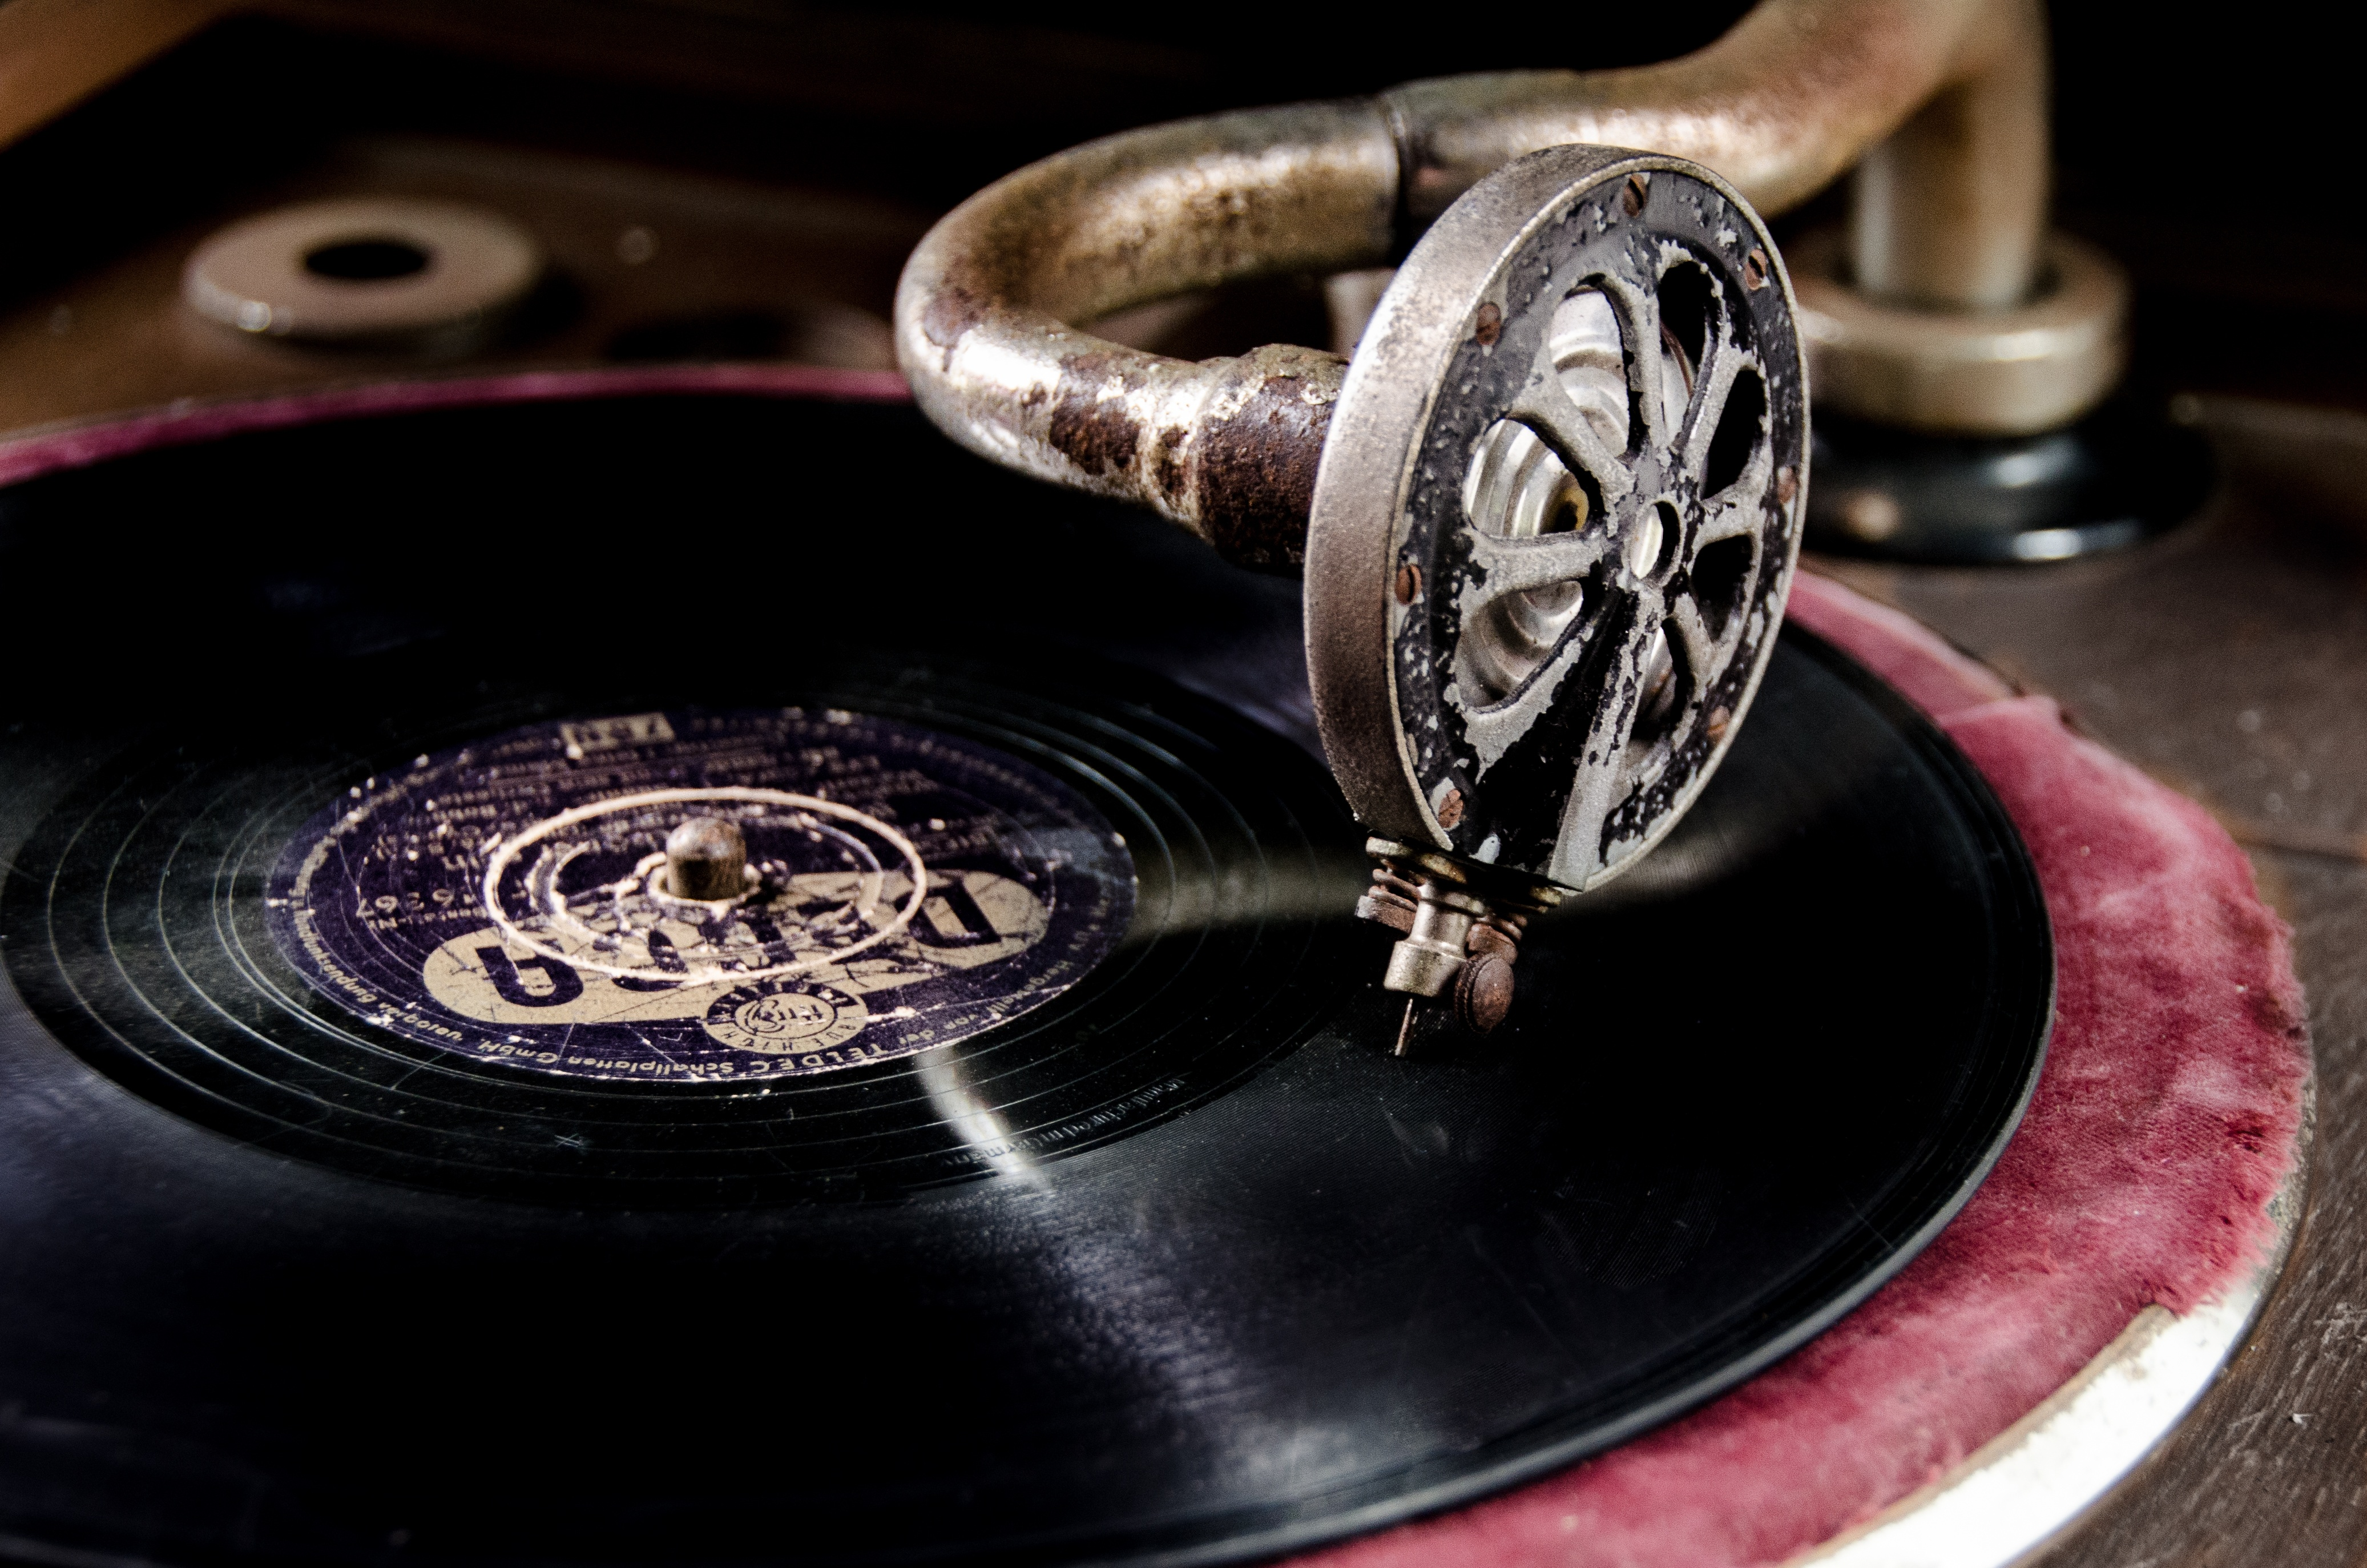 Old Vinyl, Disc, Music, Musical, Object, HQ Photo